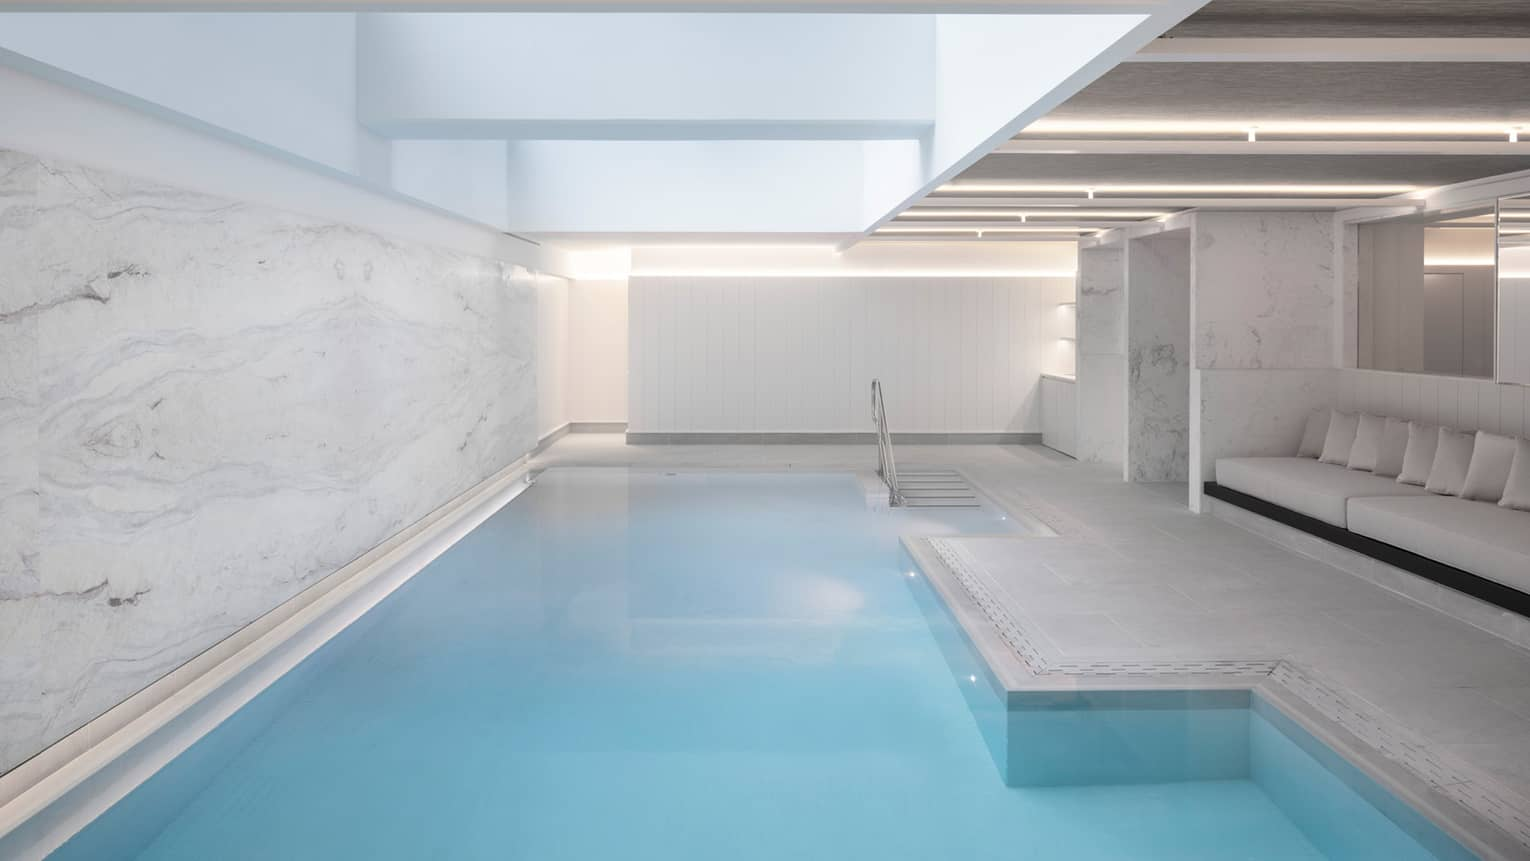 Indoor pool at spa, banquet of seating on one side, marbled wall on other